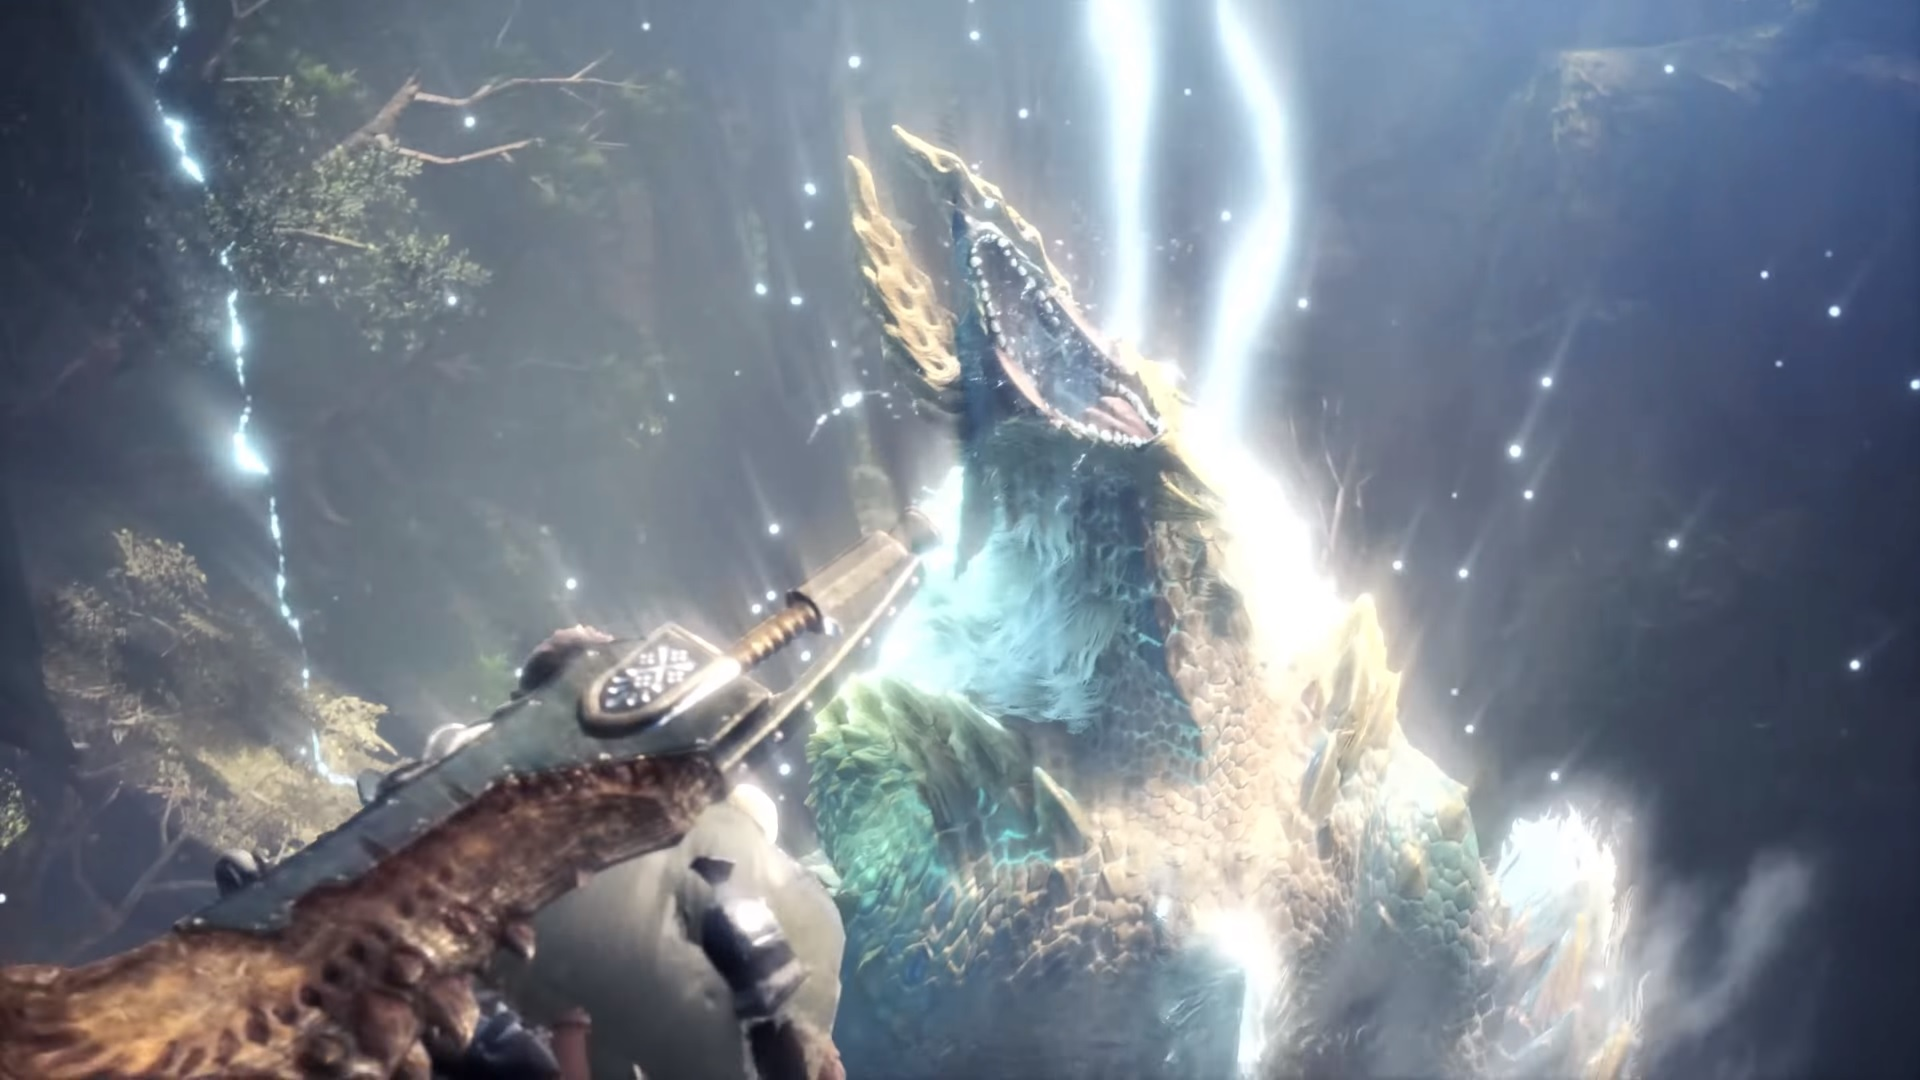 Mhw A Shocking Climax Event Quest Guide Space Lord Super 8